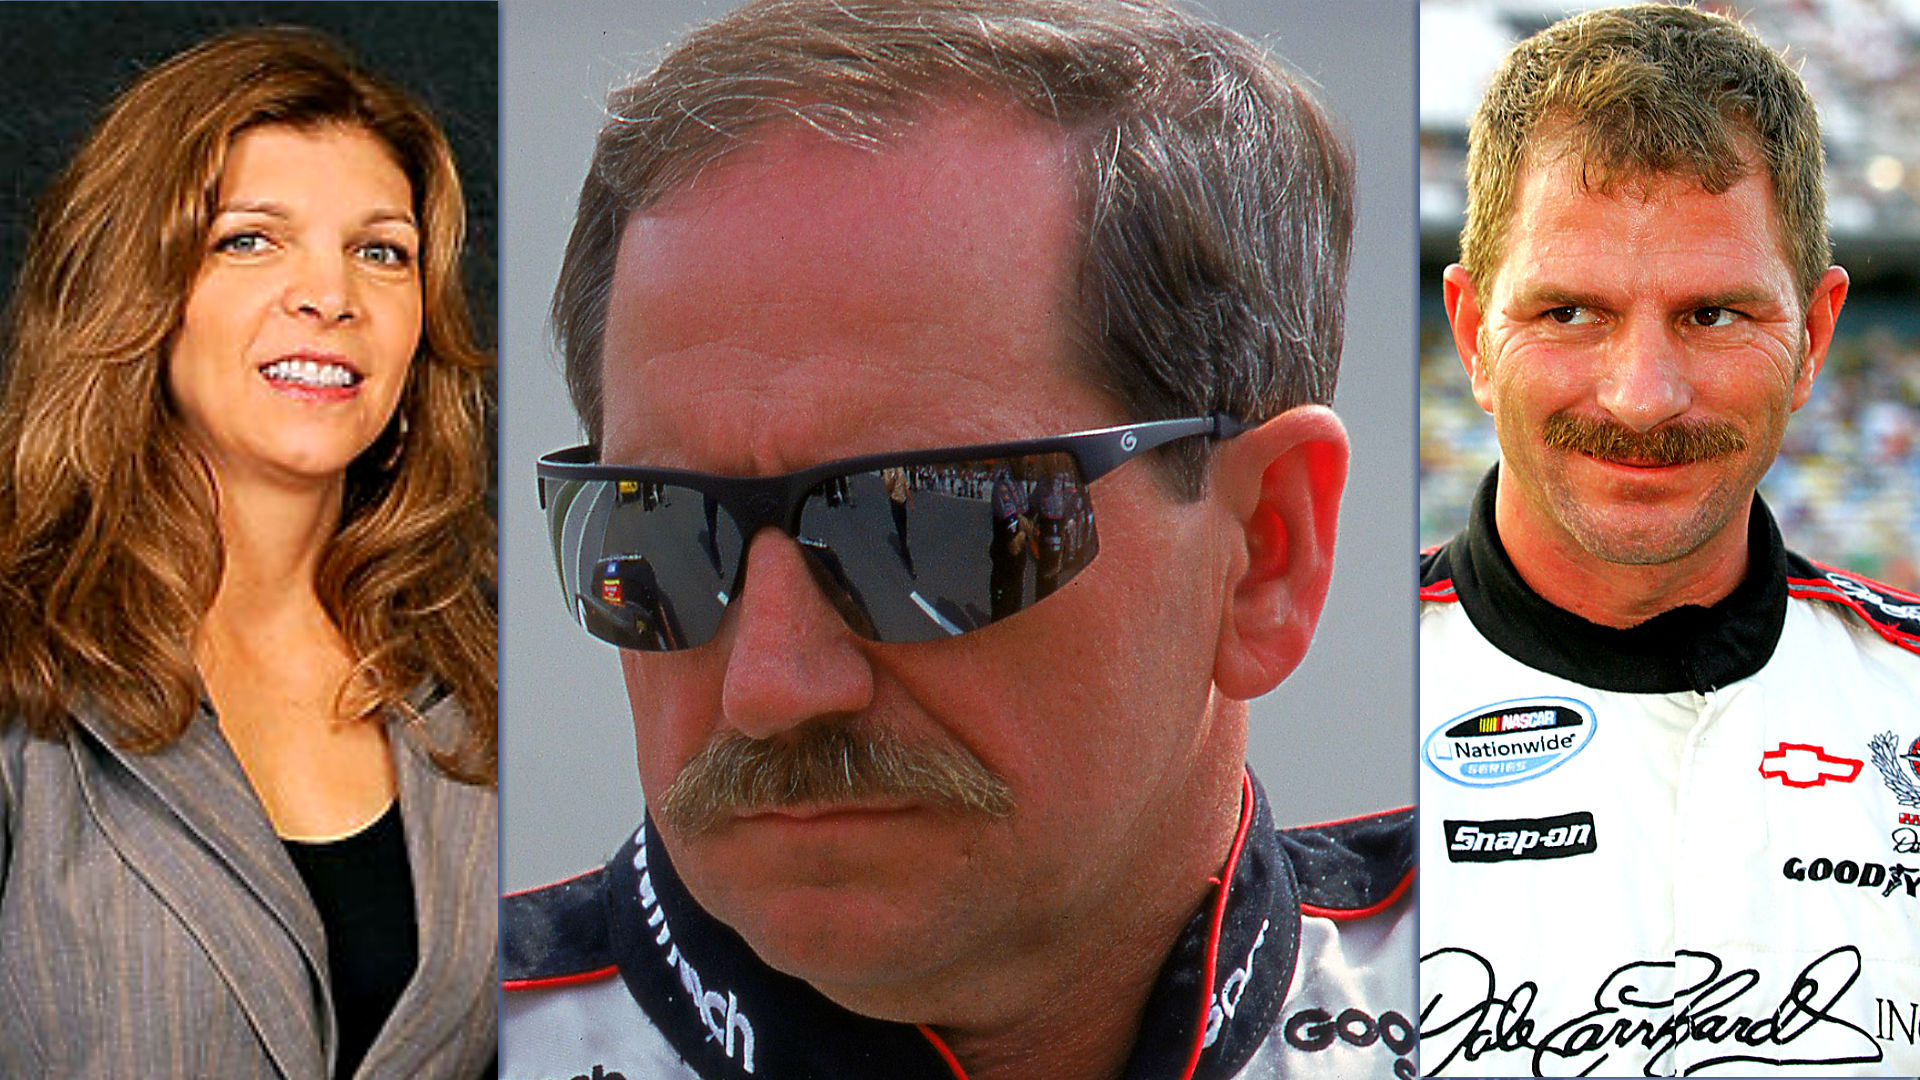 Nascar Family Feuds Teresa Earnhardt Spat Latest Squabble Among Racing Families Sporting News Who is teresa earnhardt dating now? nascar family feuds teresa earnhardt